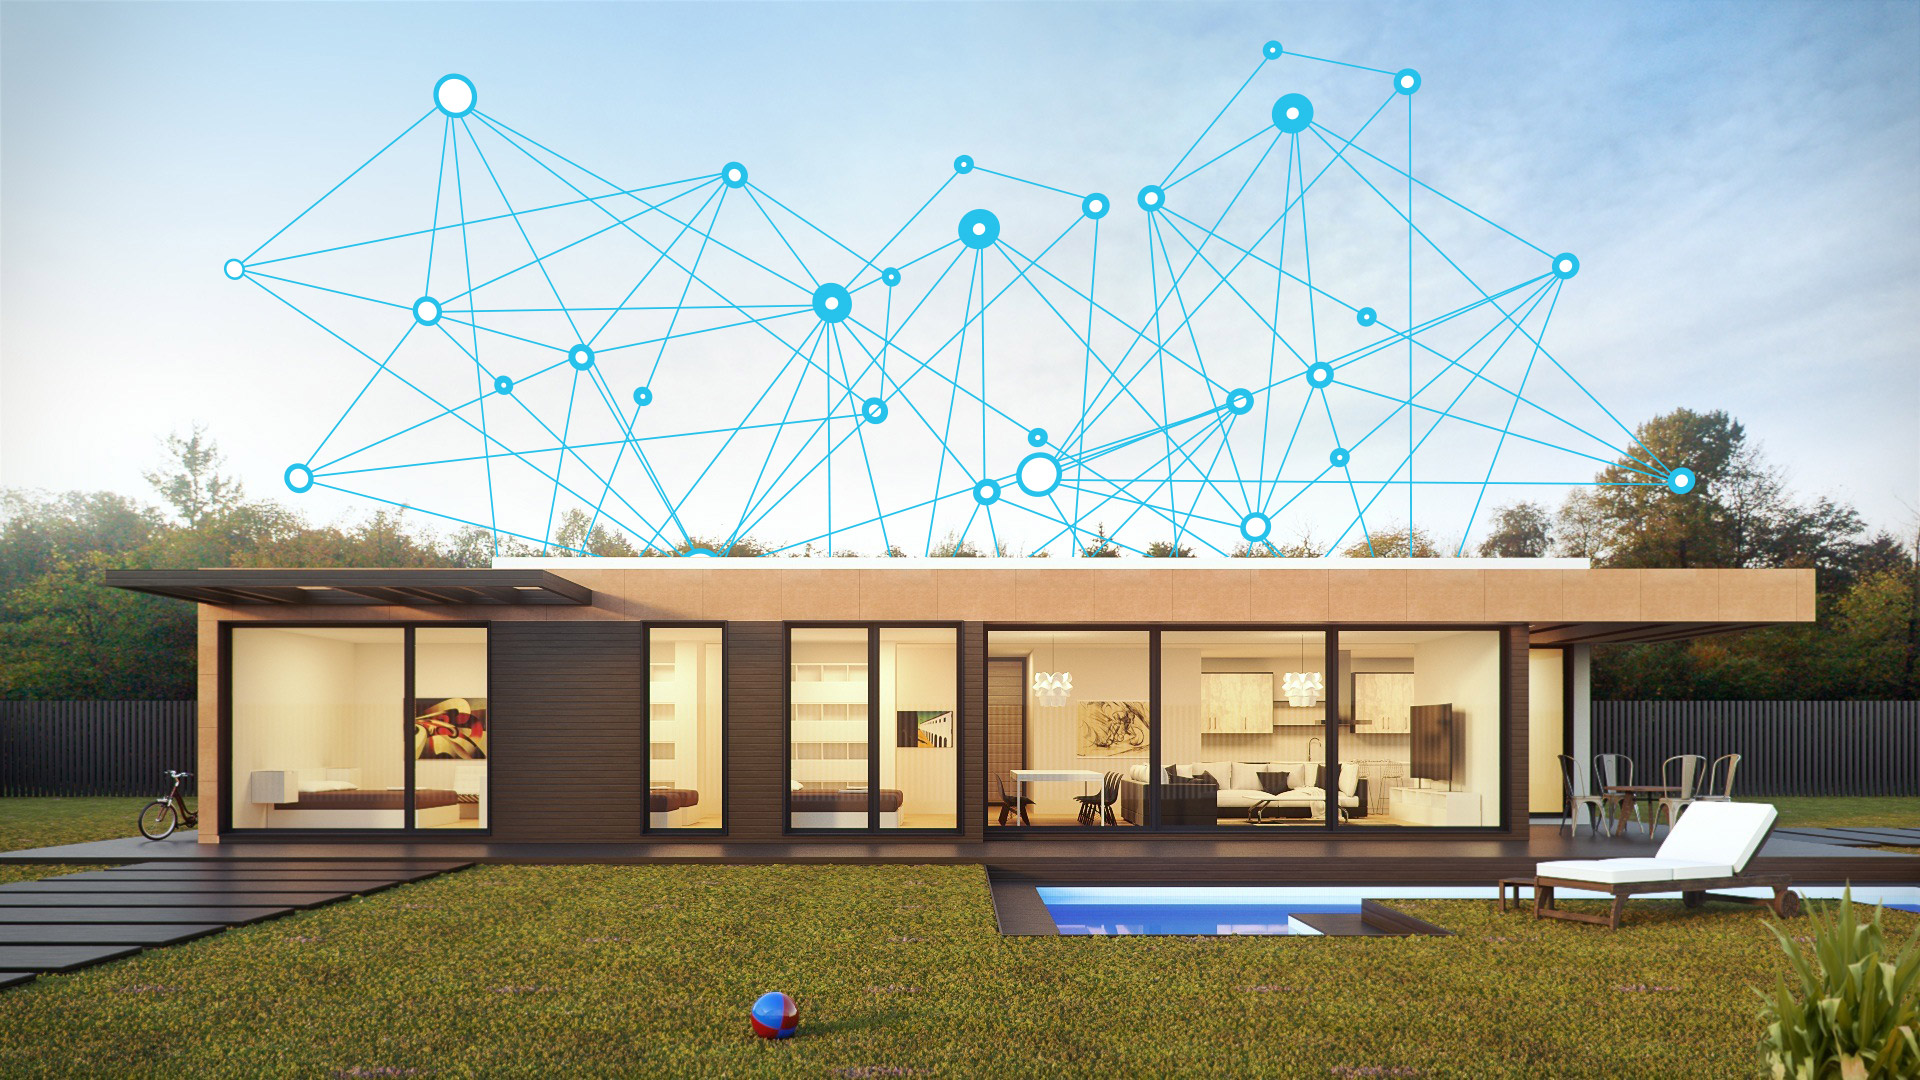 Smart homes can be easily hacked via unsecured MQTT servers